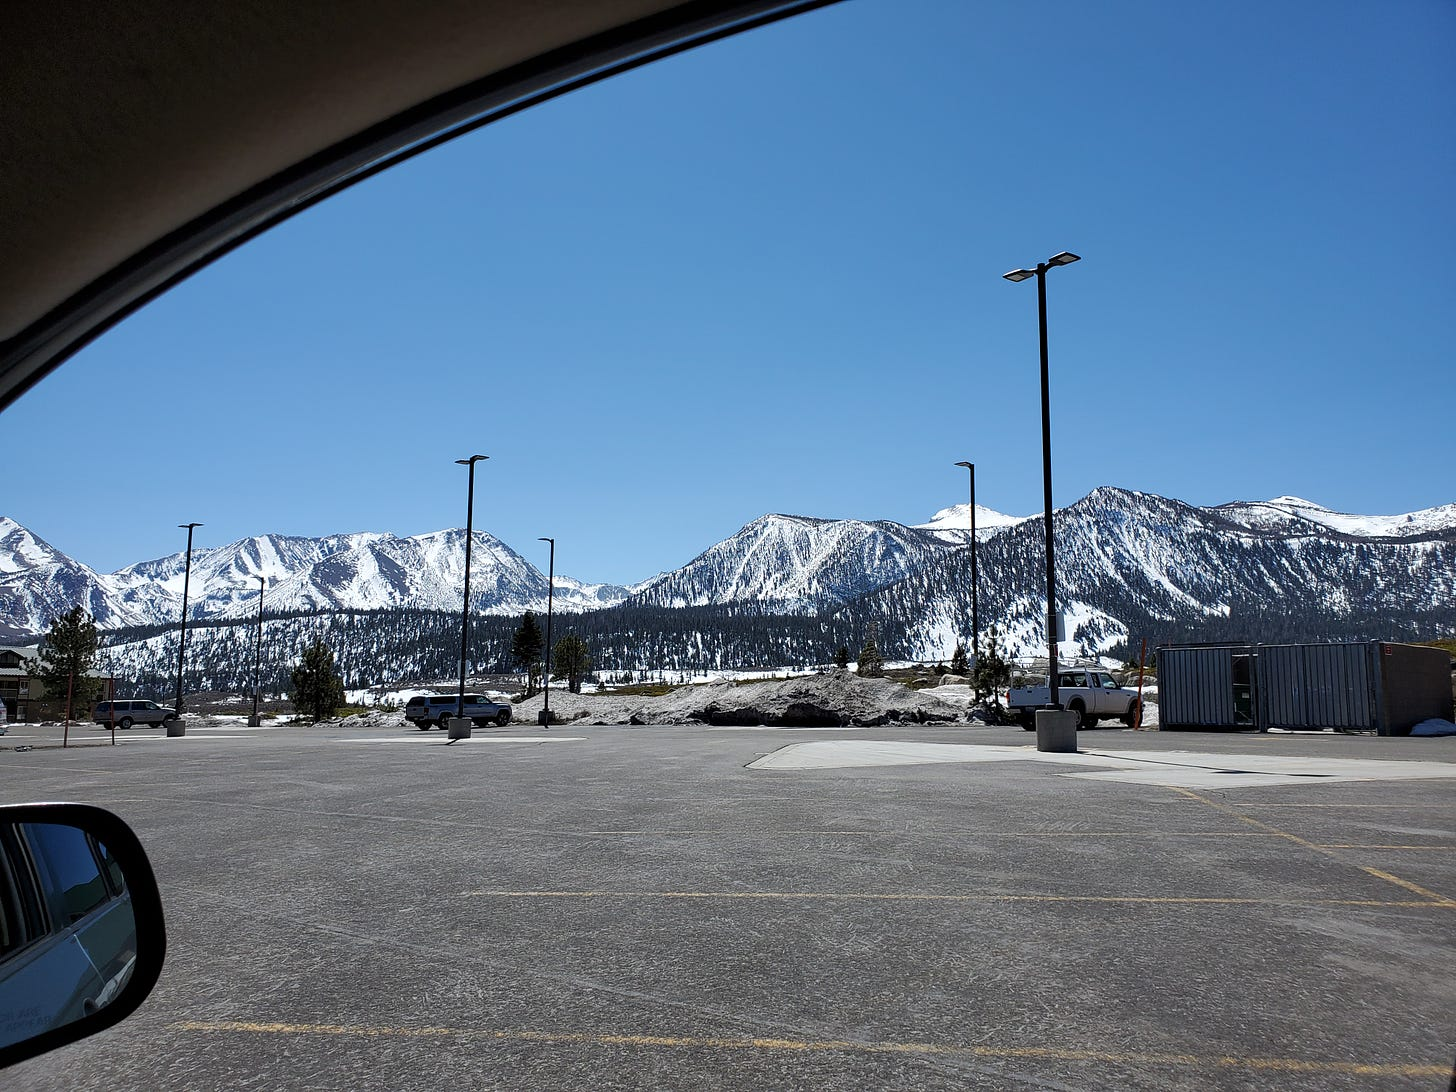 Image of snow bedecked Sherwin Mountains in background, an empty park lot in the foreground.